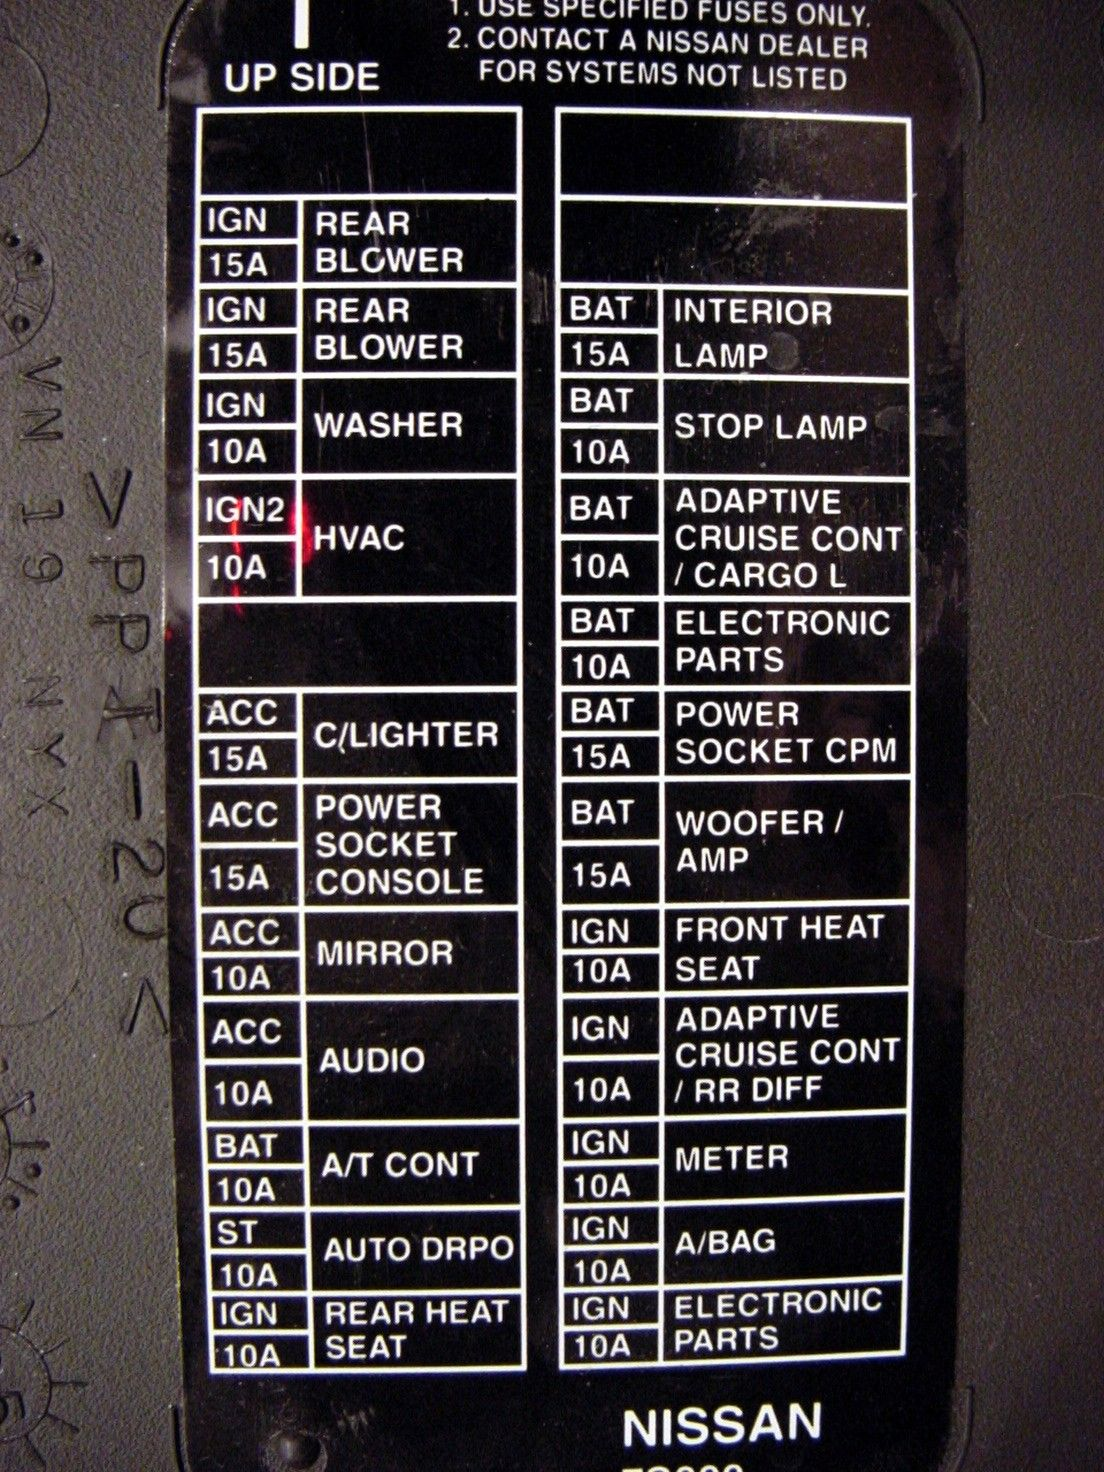 1998 Ford Taurus Fuse Box Wiring Library 99 F250 Diesel Diagram Nissan Titan 2004 Timing Belt Image Details Panel